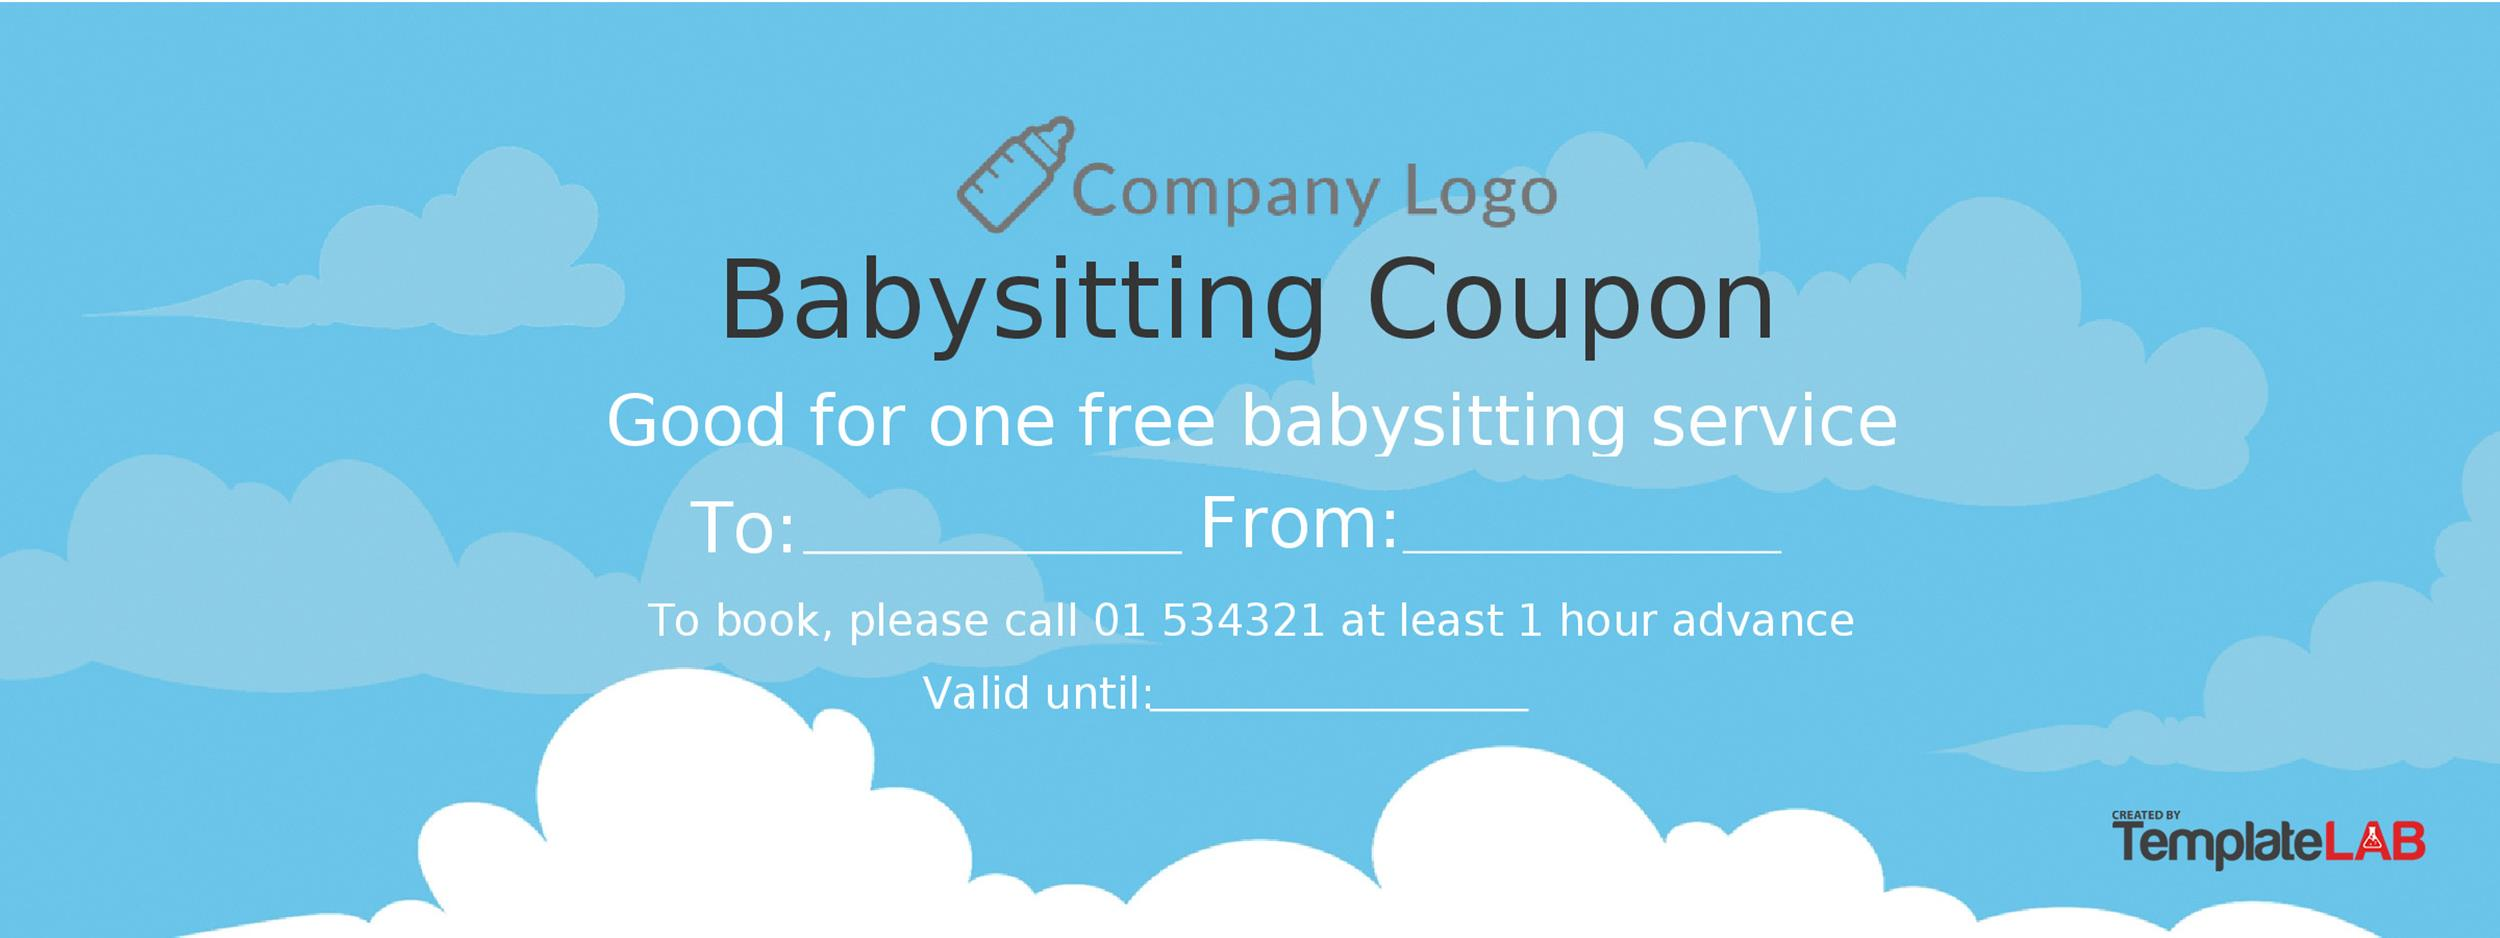 Free Babysitting Coupon 1  – TemplateLab